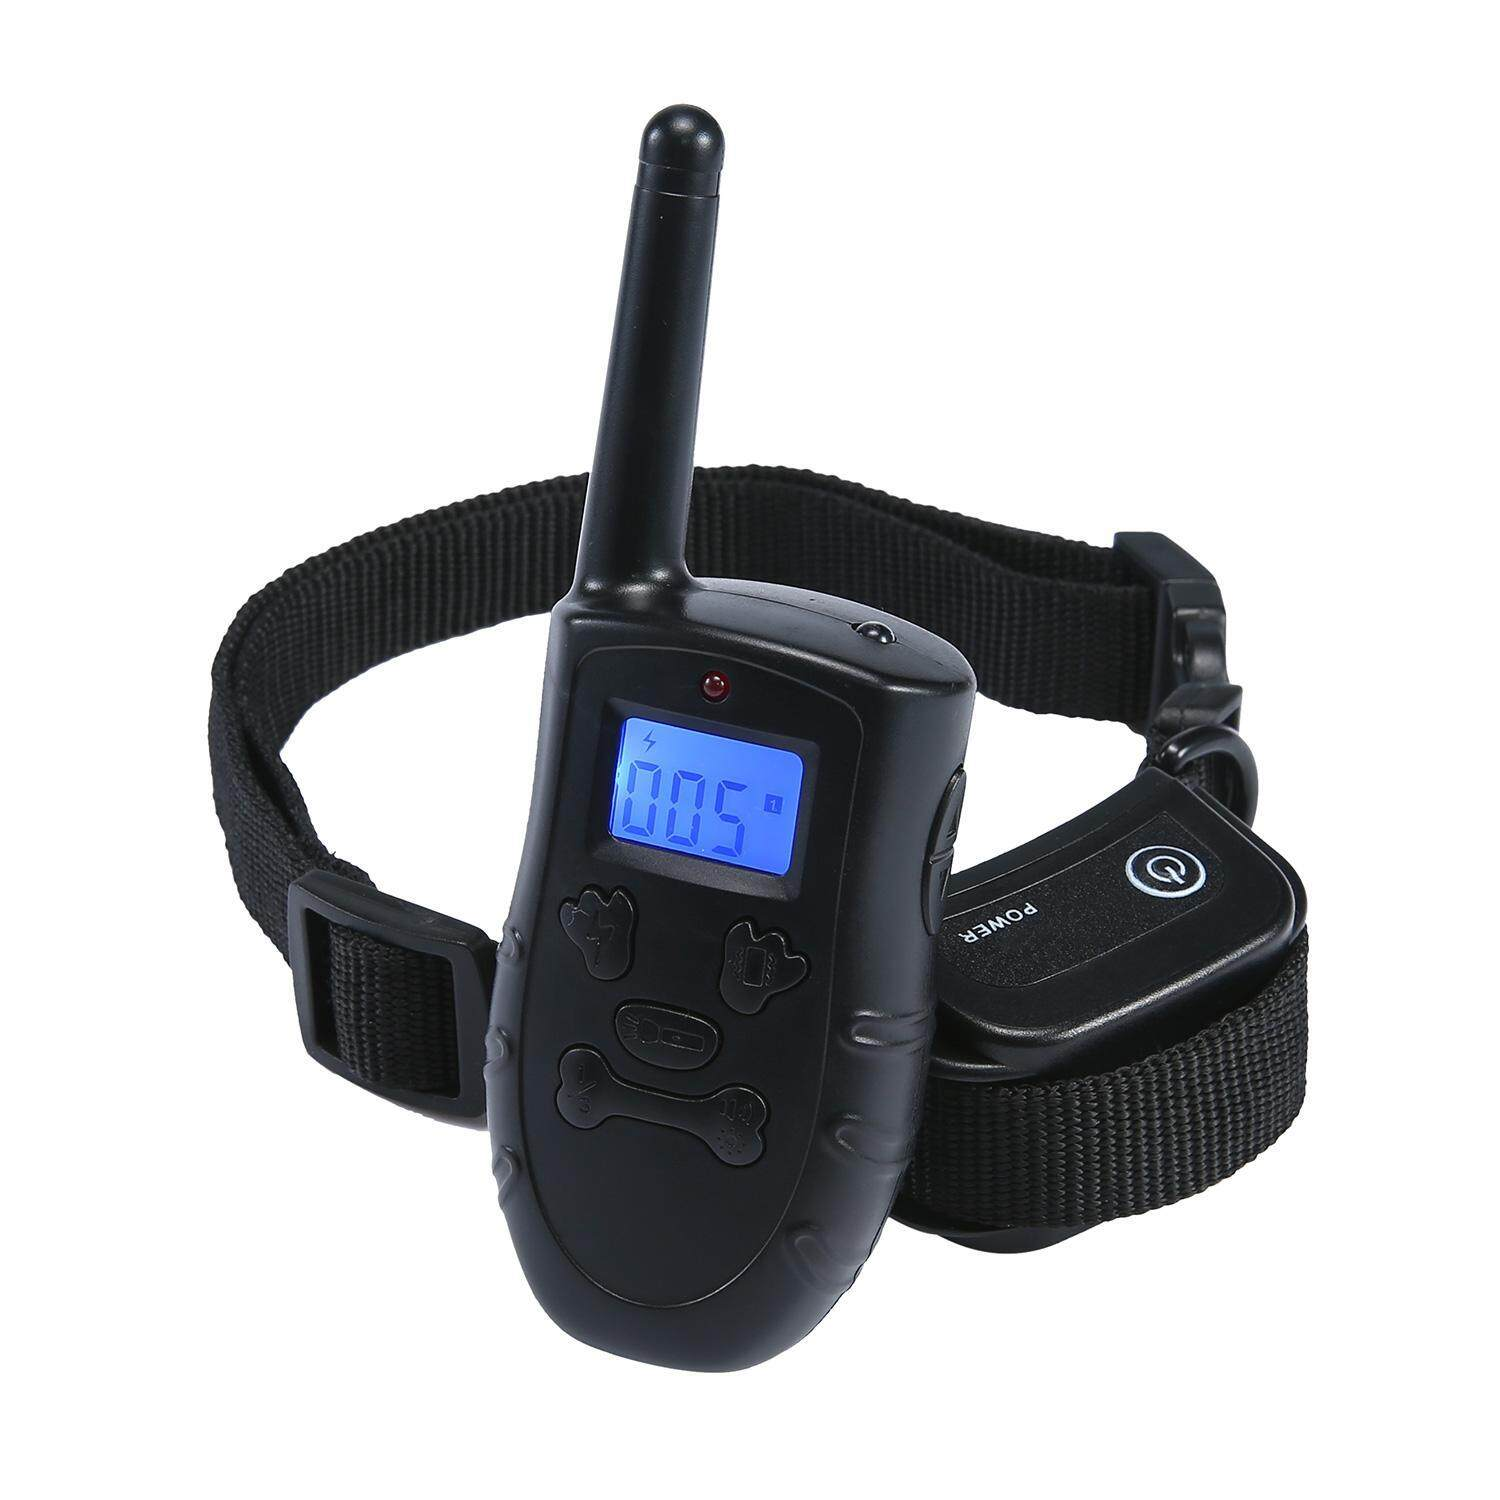 Leegoal Rechargeable And Rainproof 330 Yd Remote Dog Training Collar With Beep, Vibration And Shock Electronic Electric Collar By Leegoal.